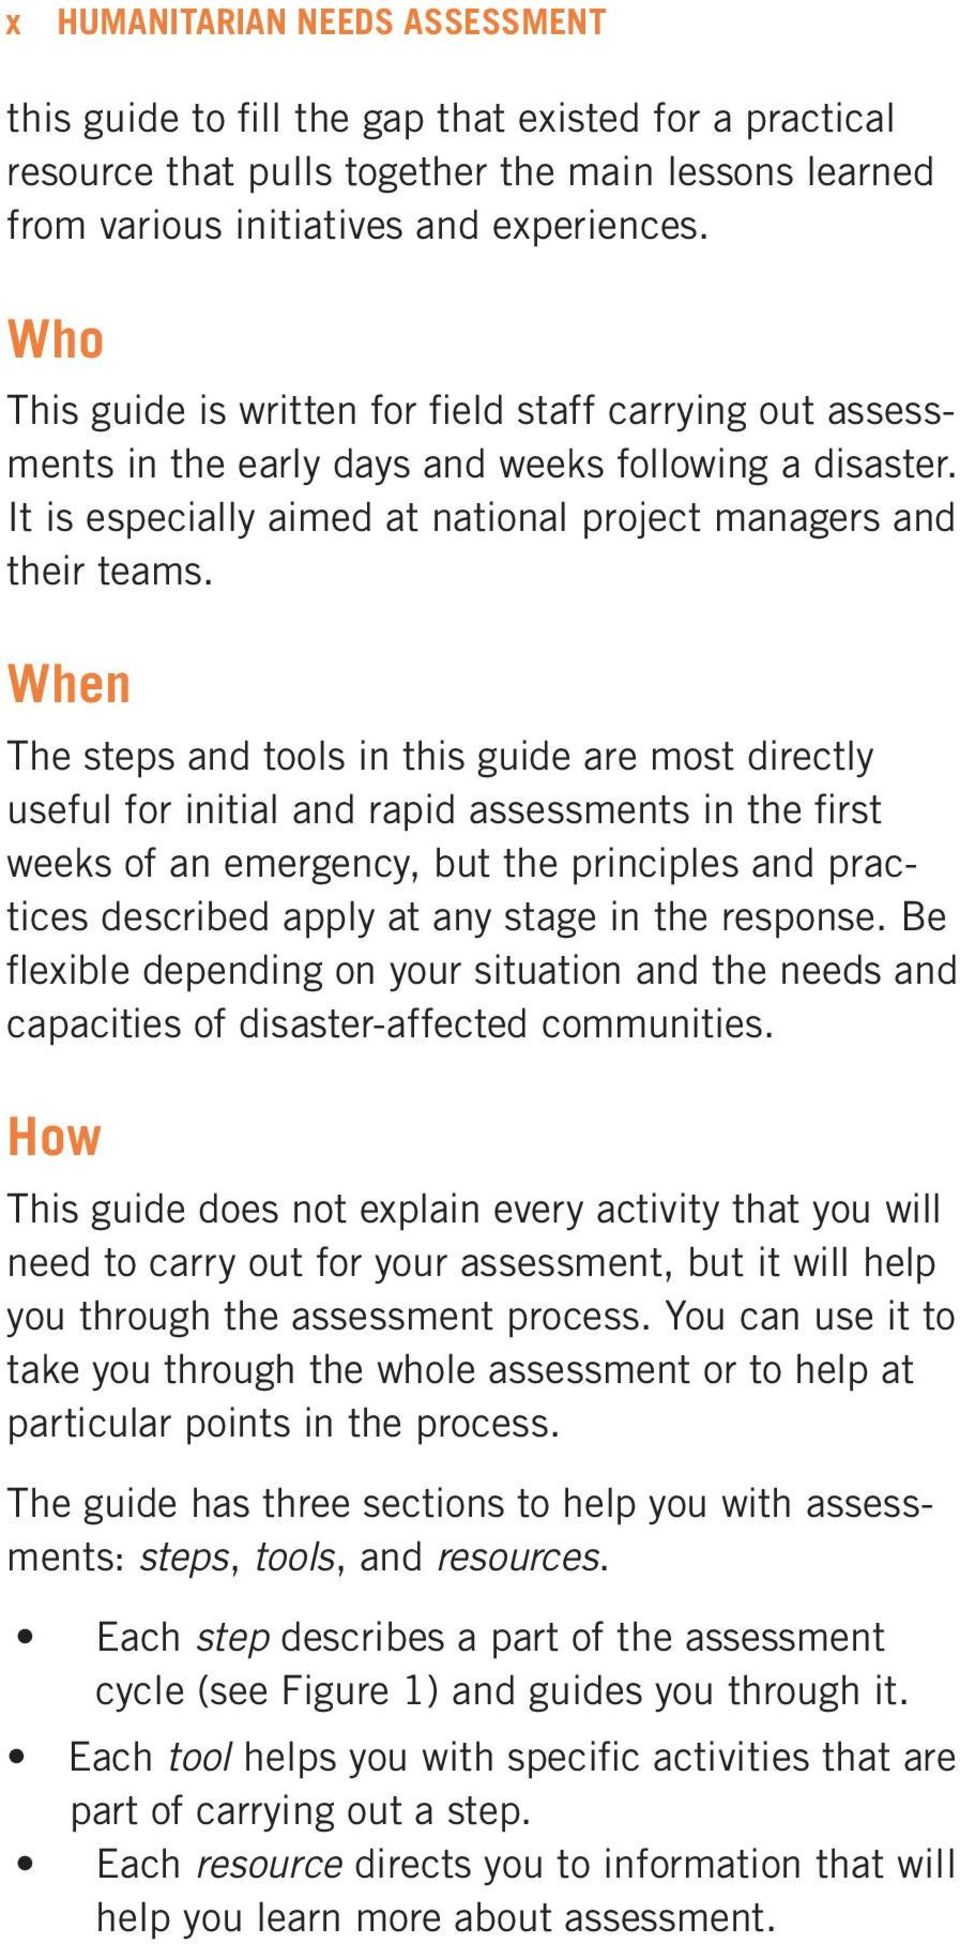 When The steps and tools in this guide are most directly useful for initial and rapid assessments in the first weeks of an emergency, but the principles and practices described apply at any stage in